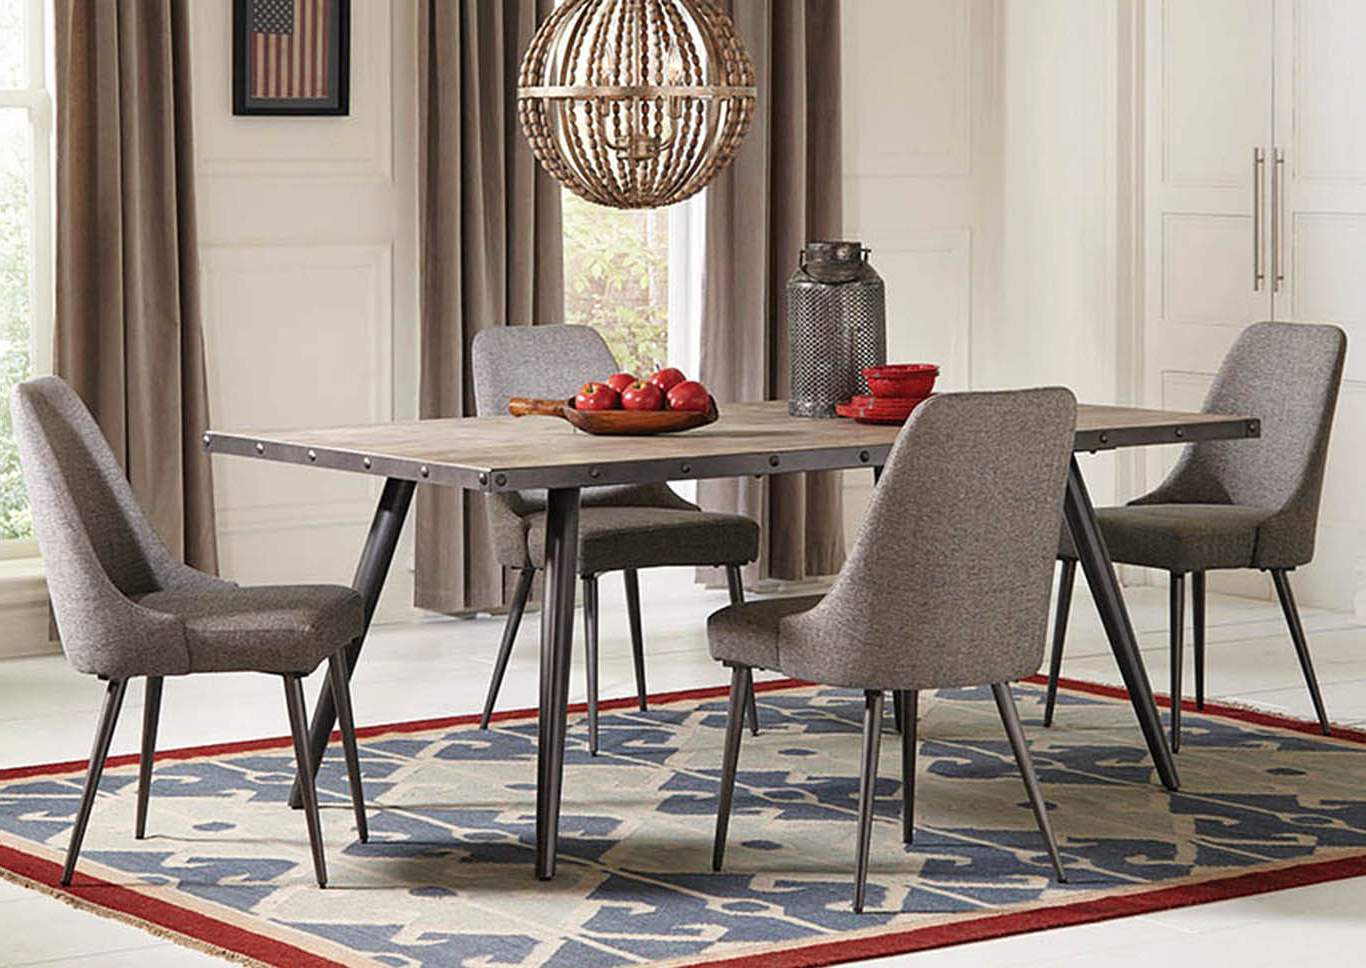 Coaster Contemporary 6 Seating Rectangular Casual Dining Tables For Most Current Home Furnishings Depot – Ny Levitt Dining Table (View 4 of 30)